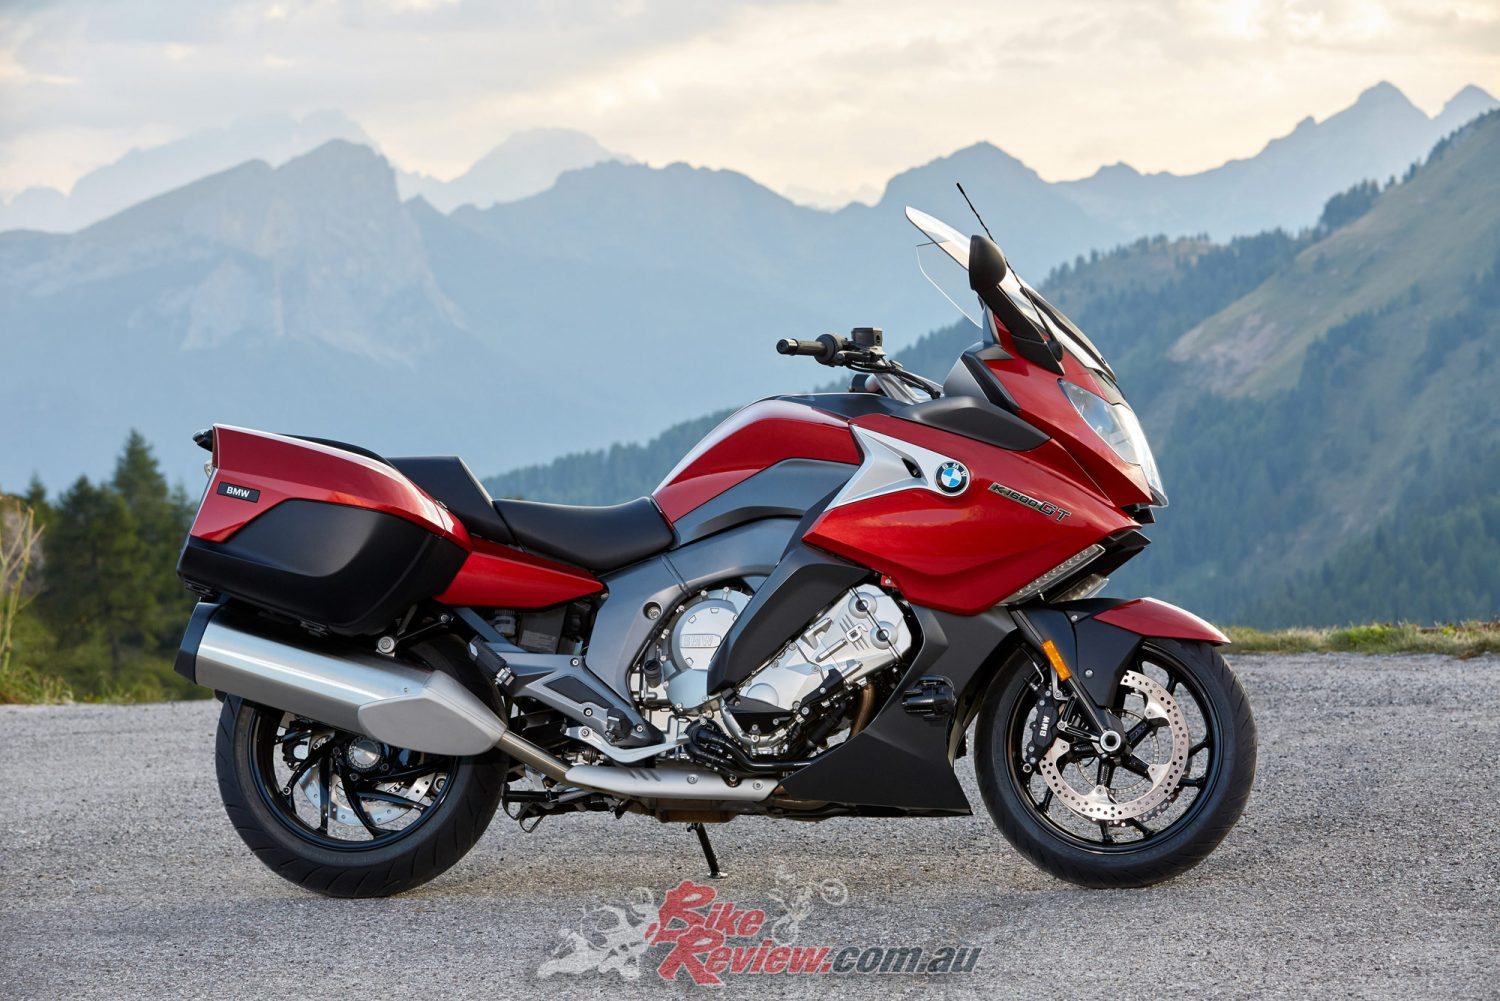 2017 BMW K 1600 GT - Bike Review